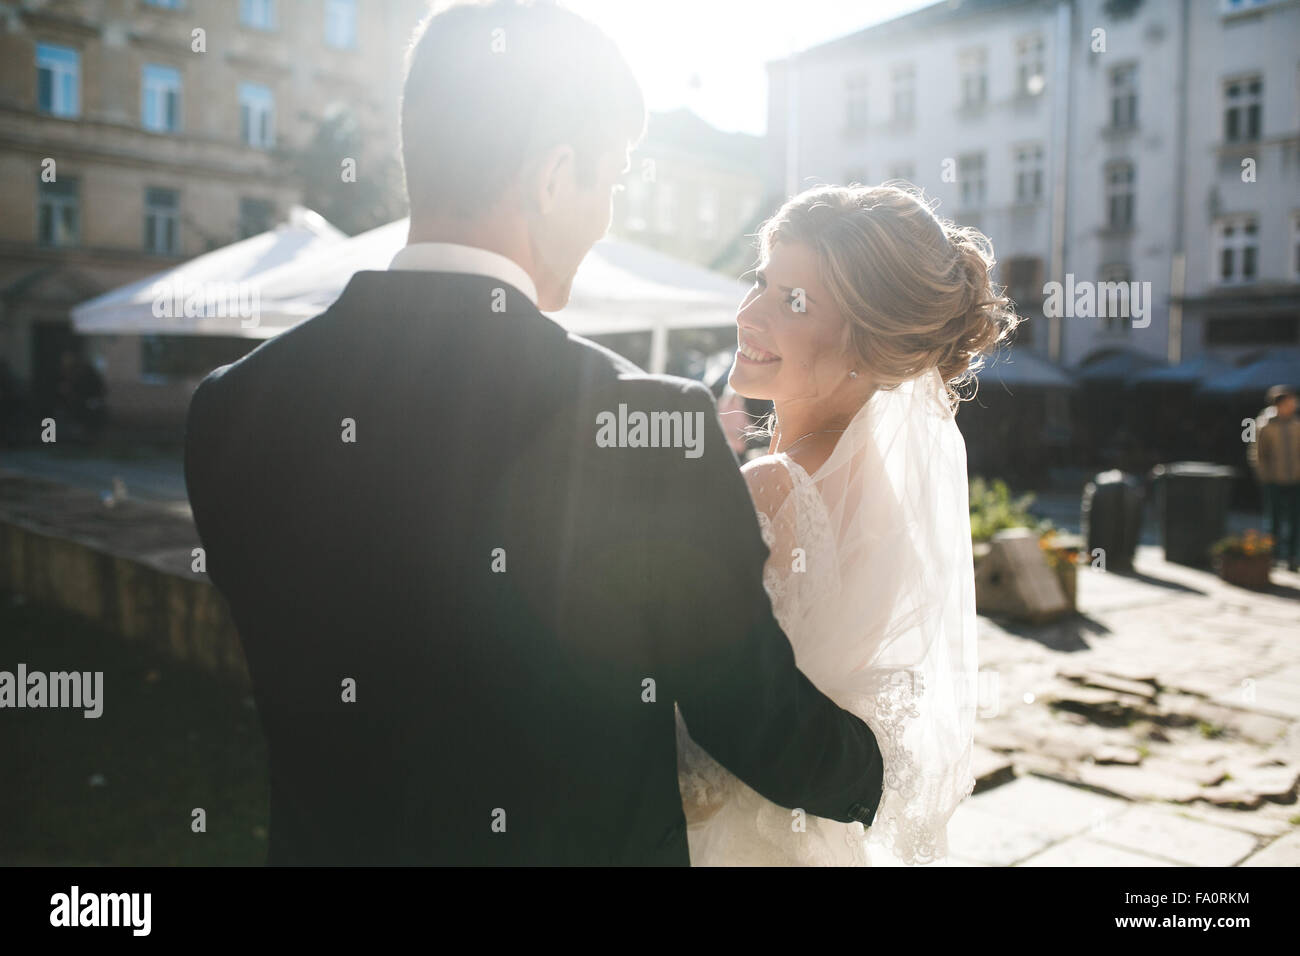 bride and groom posing on the streets - Stock Image